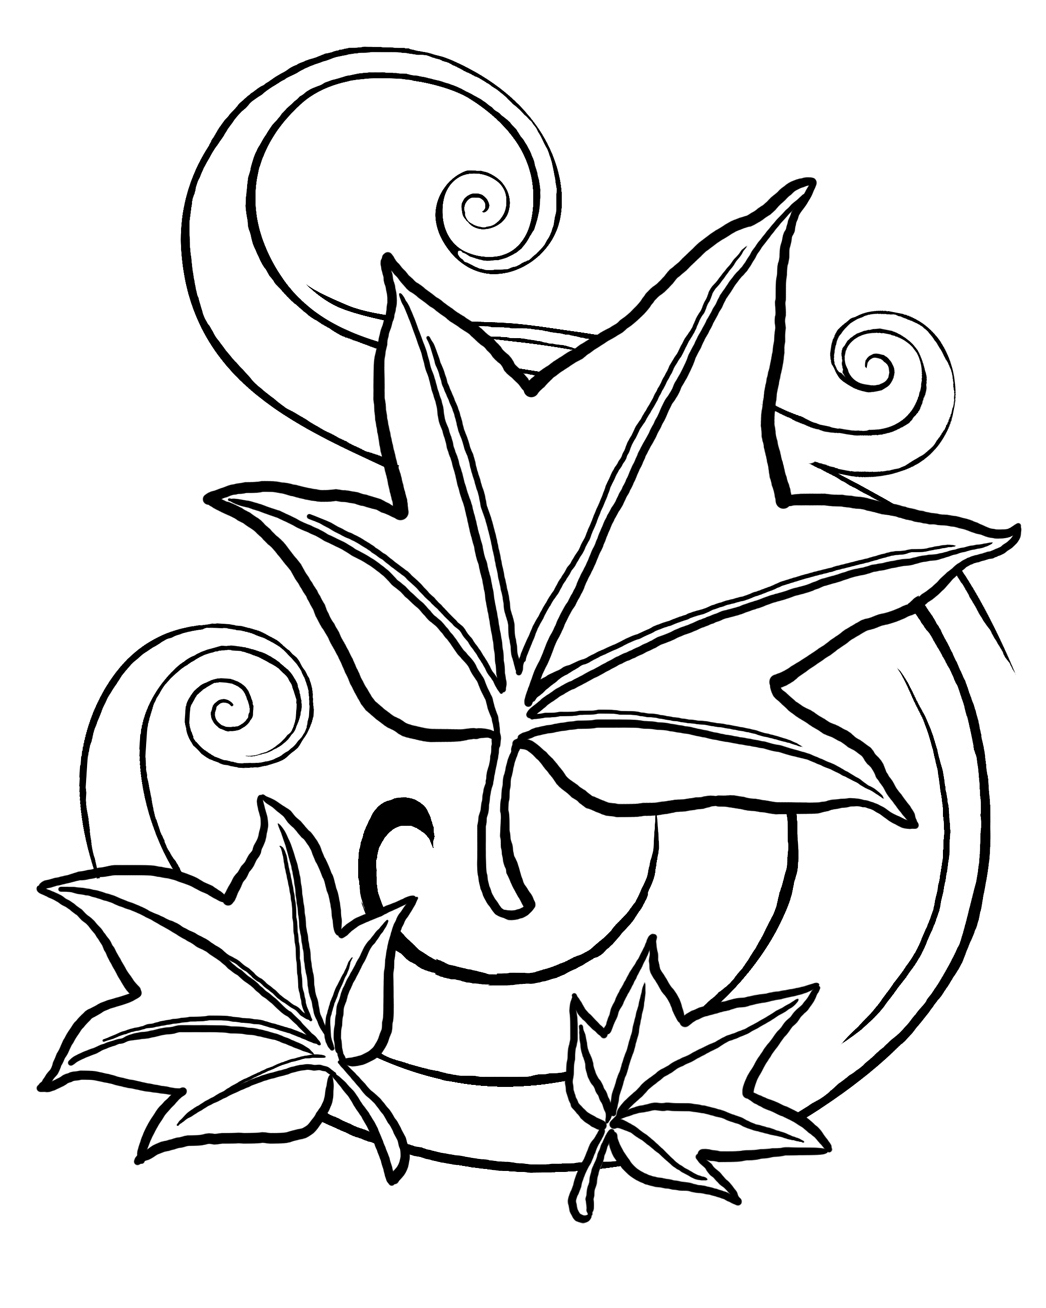 28 Free Printable Leaf Coloring Pages Compilation Free Coloring